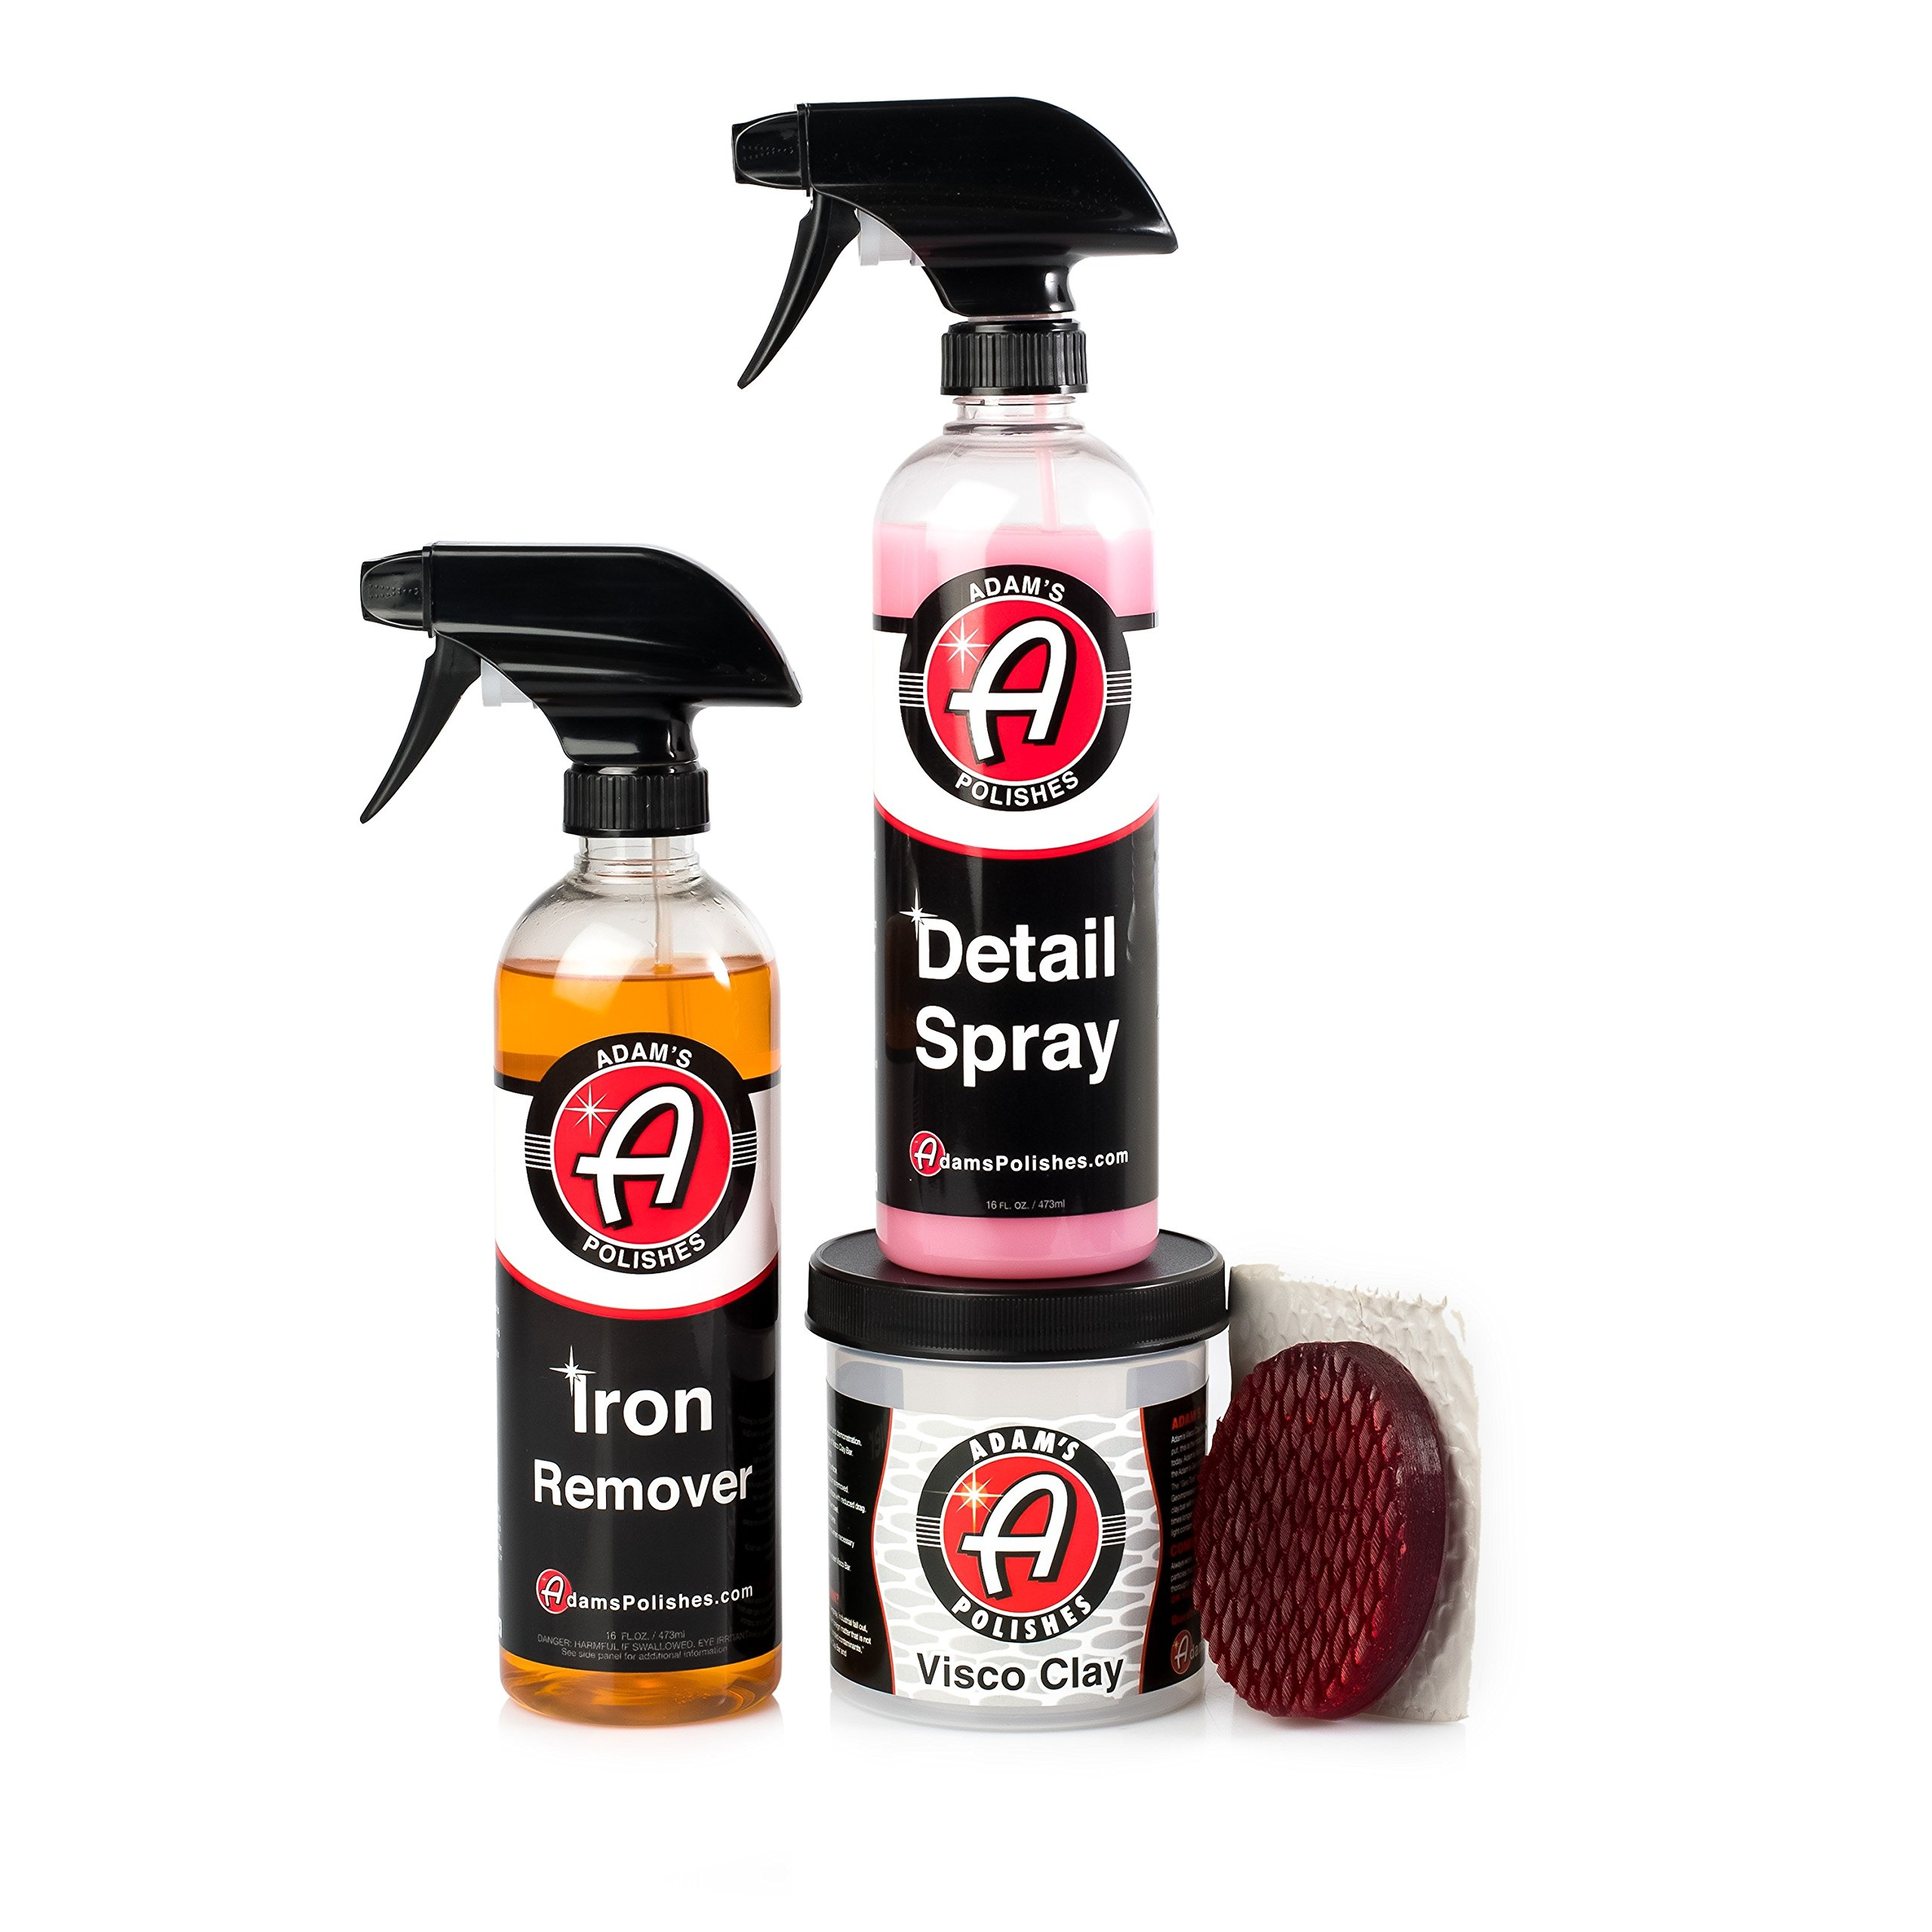 Adam's Iron & Decontamination Removal Kit - Dissolves Iron Particles Embedded Into Paint Surfaces - Visco Clay and Detail Spray Remove Other Bonded Contaminants